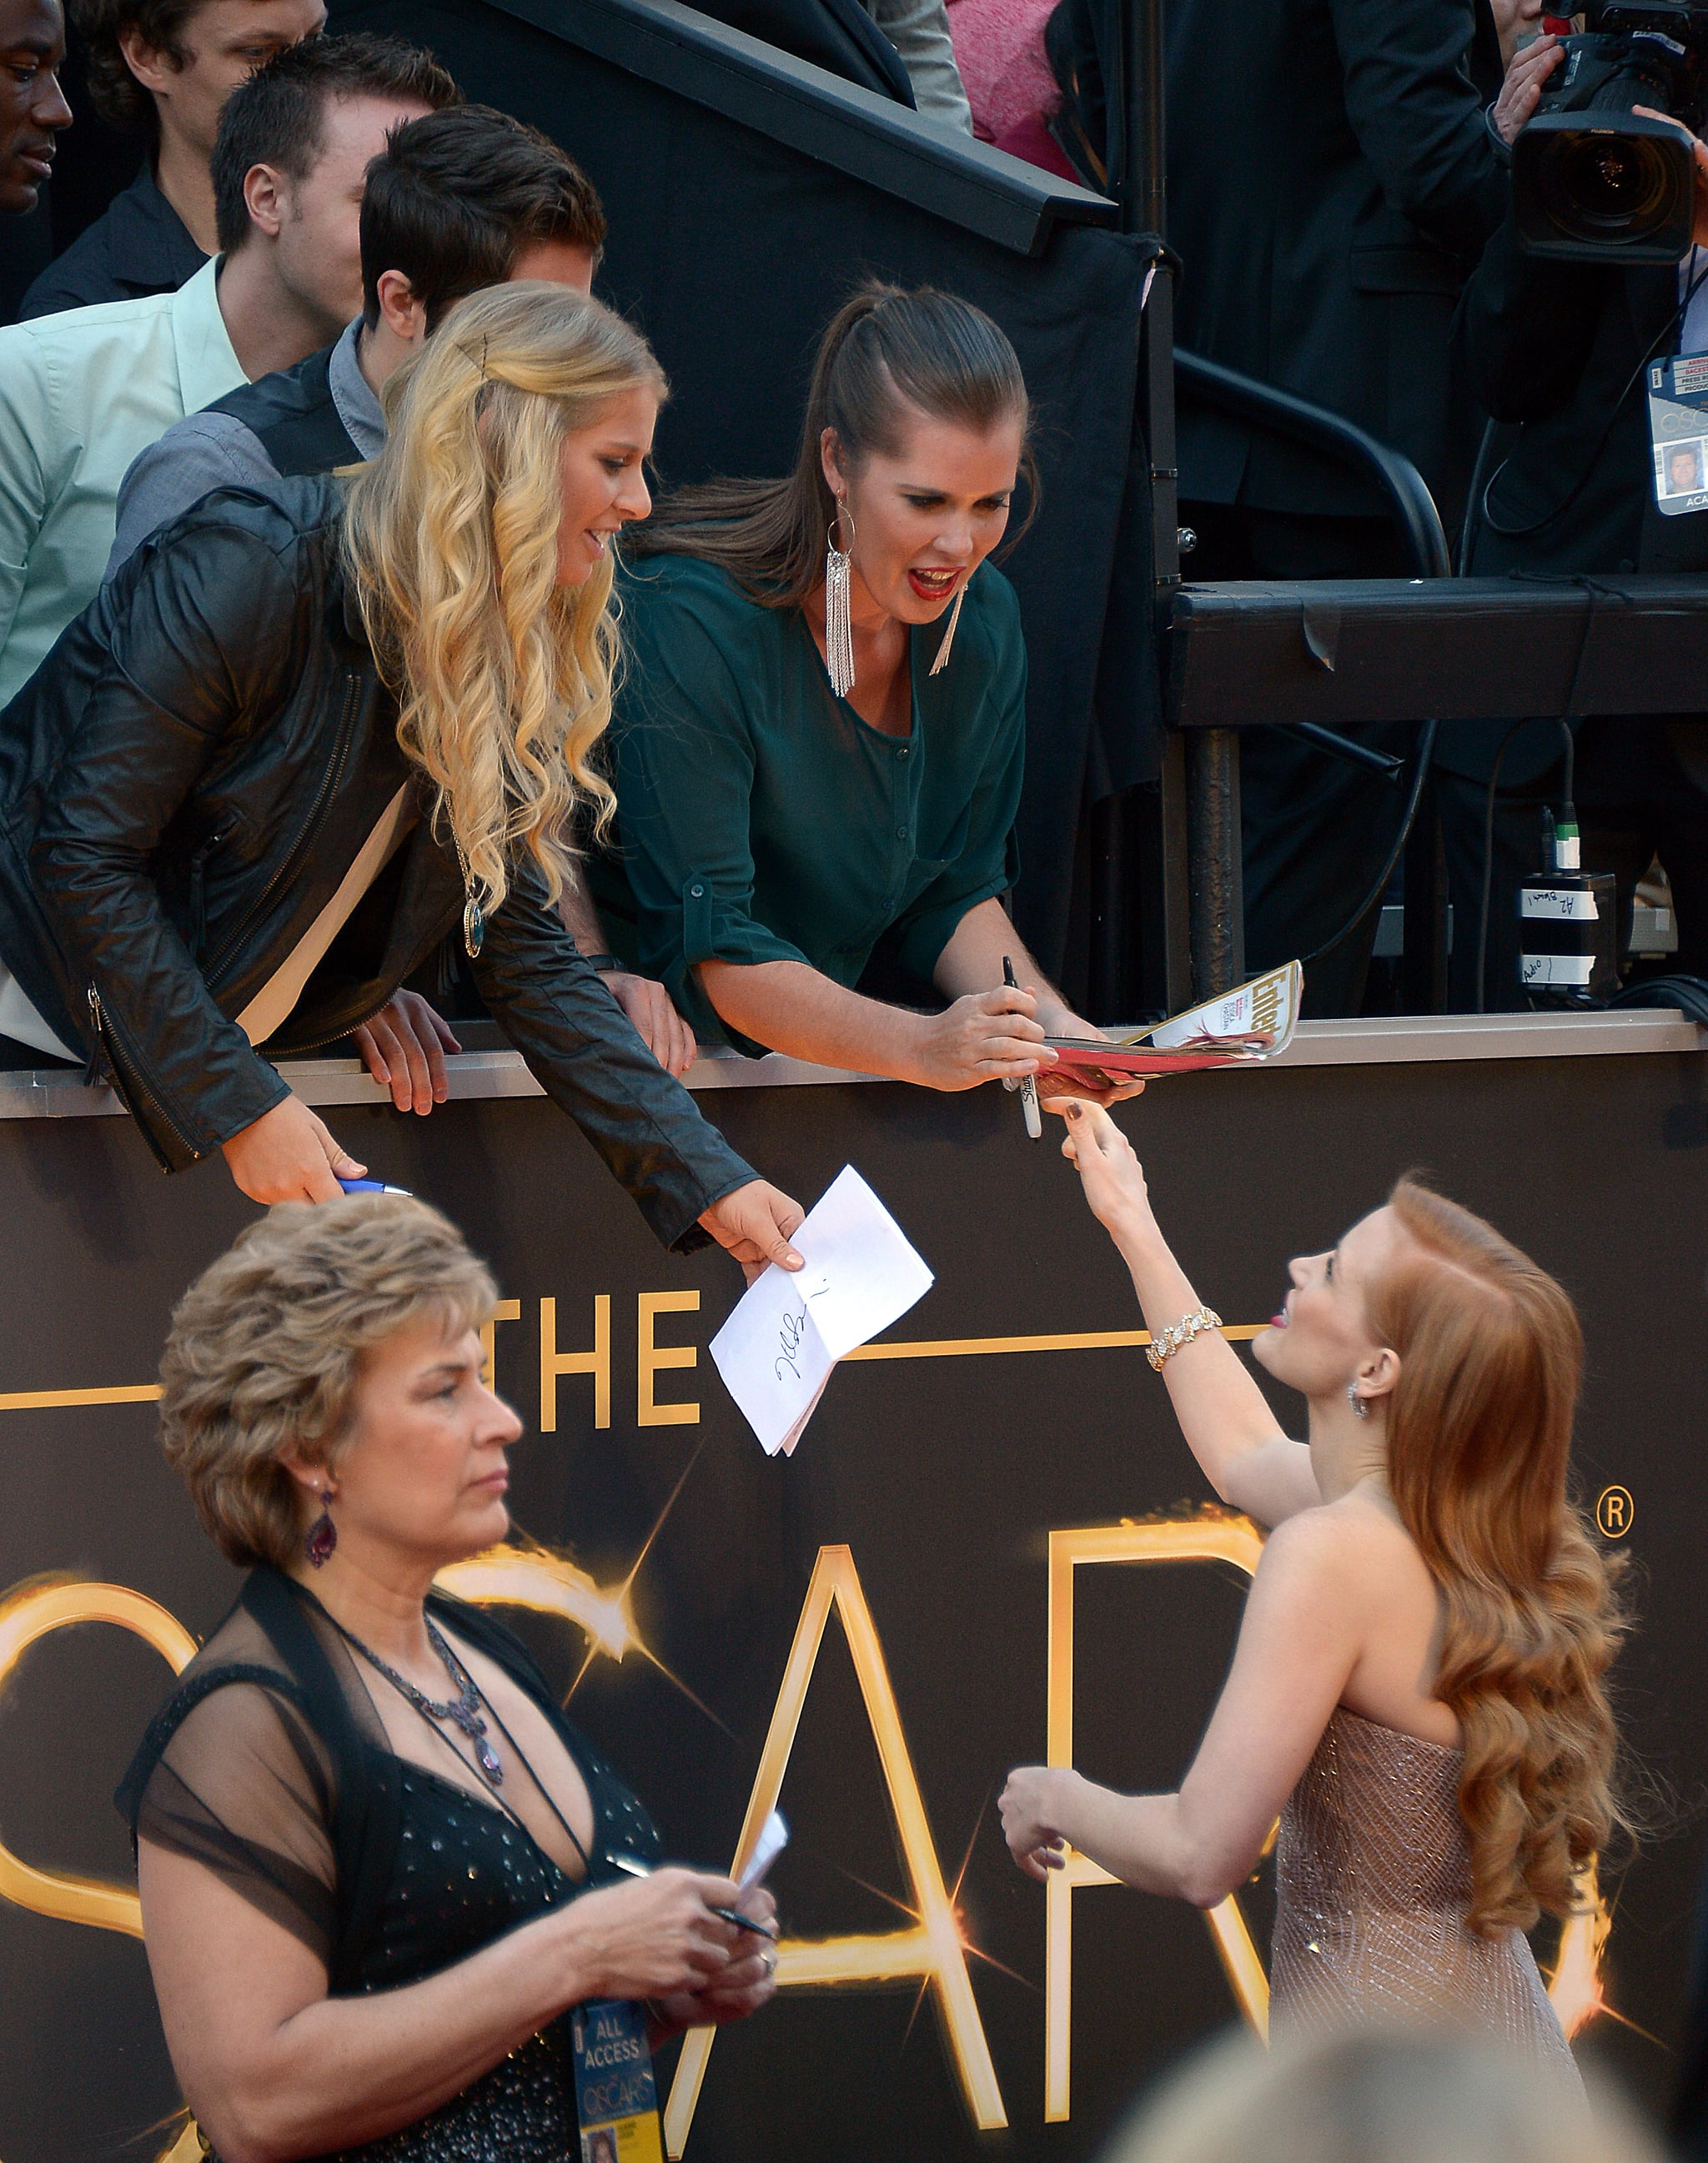 Jessica Chastain made time for fans.